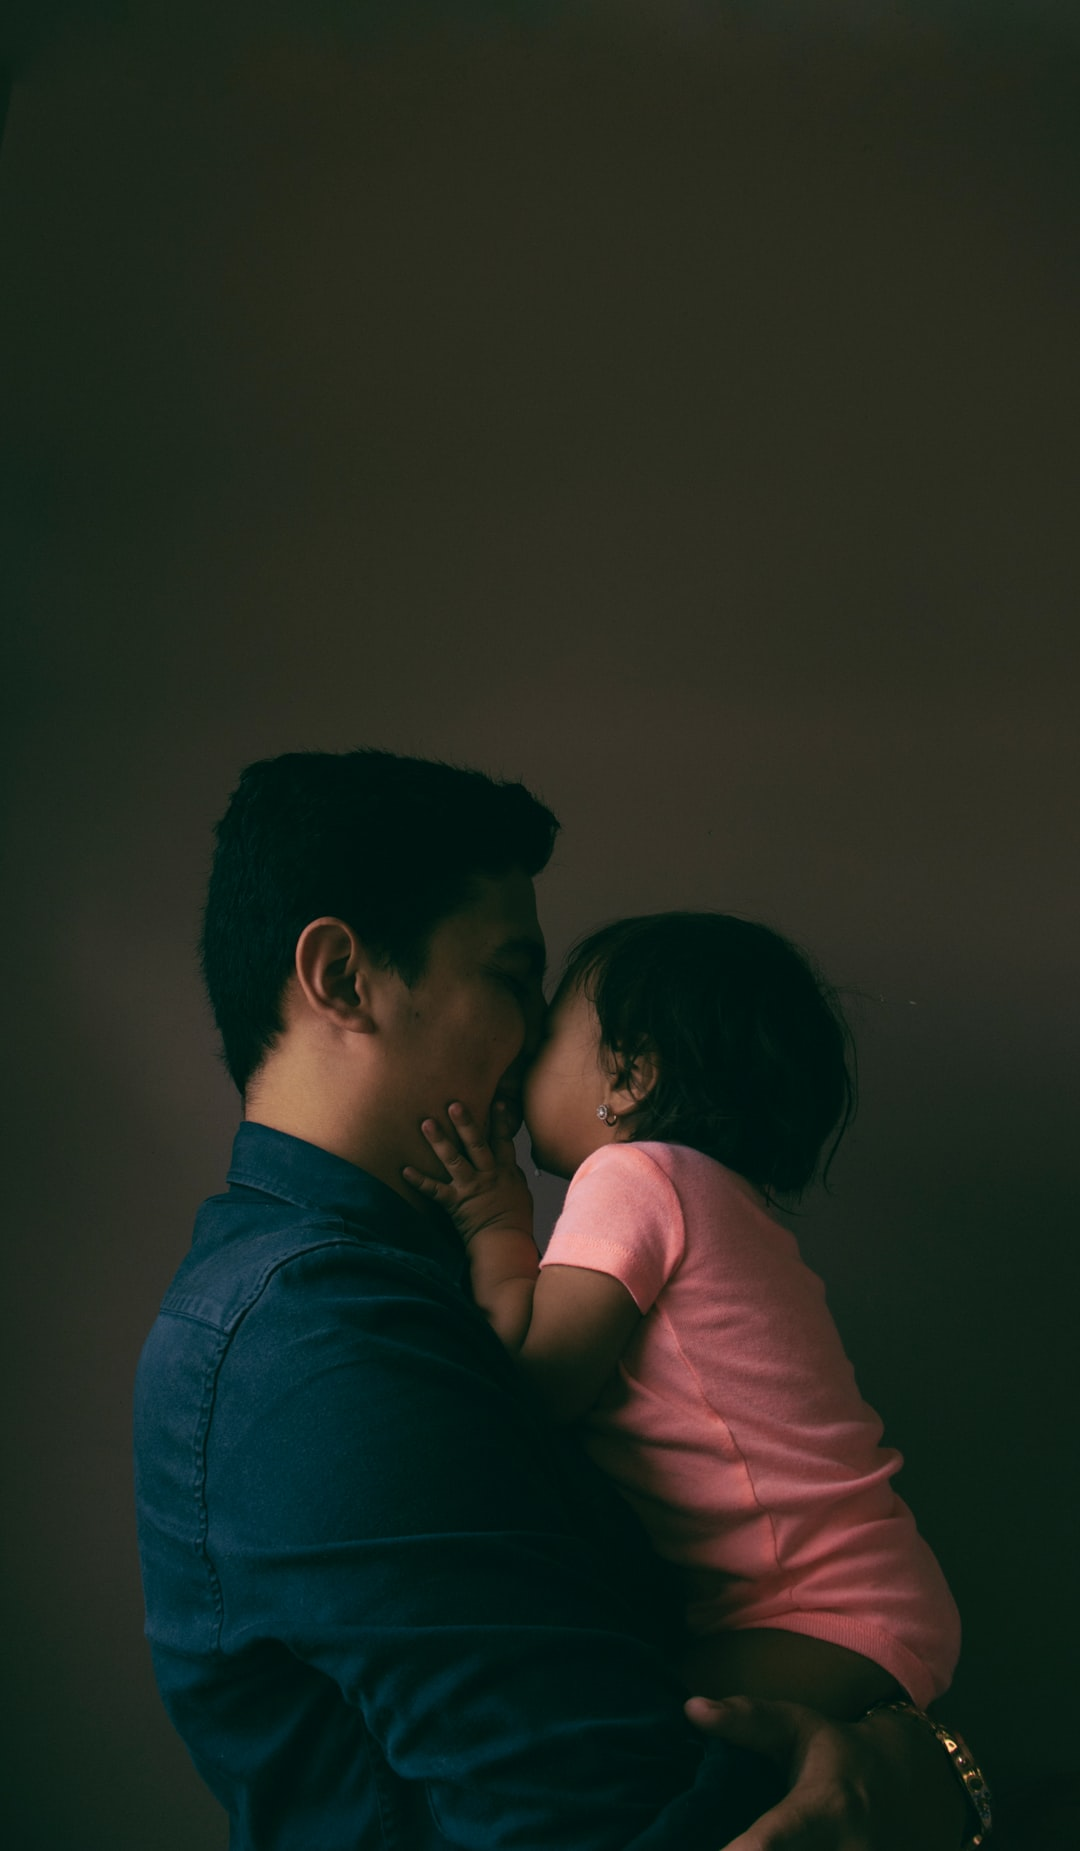 This picture is of my daughter Selah and me. I was doing a self portrait and she approached us to take a picture together, and the picture came out just at the time she gave me a kiss with a lot of love.